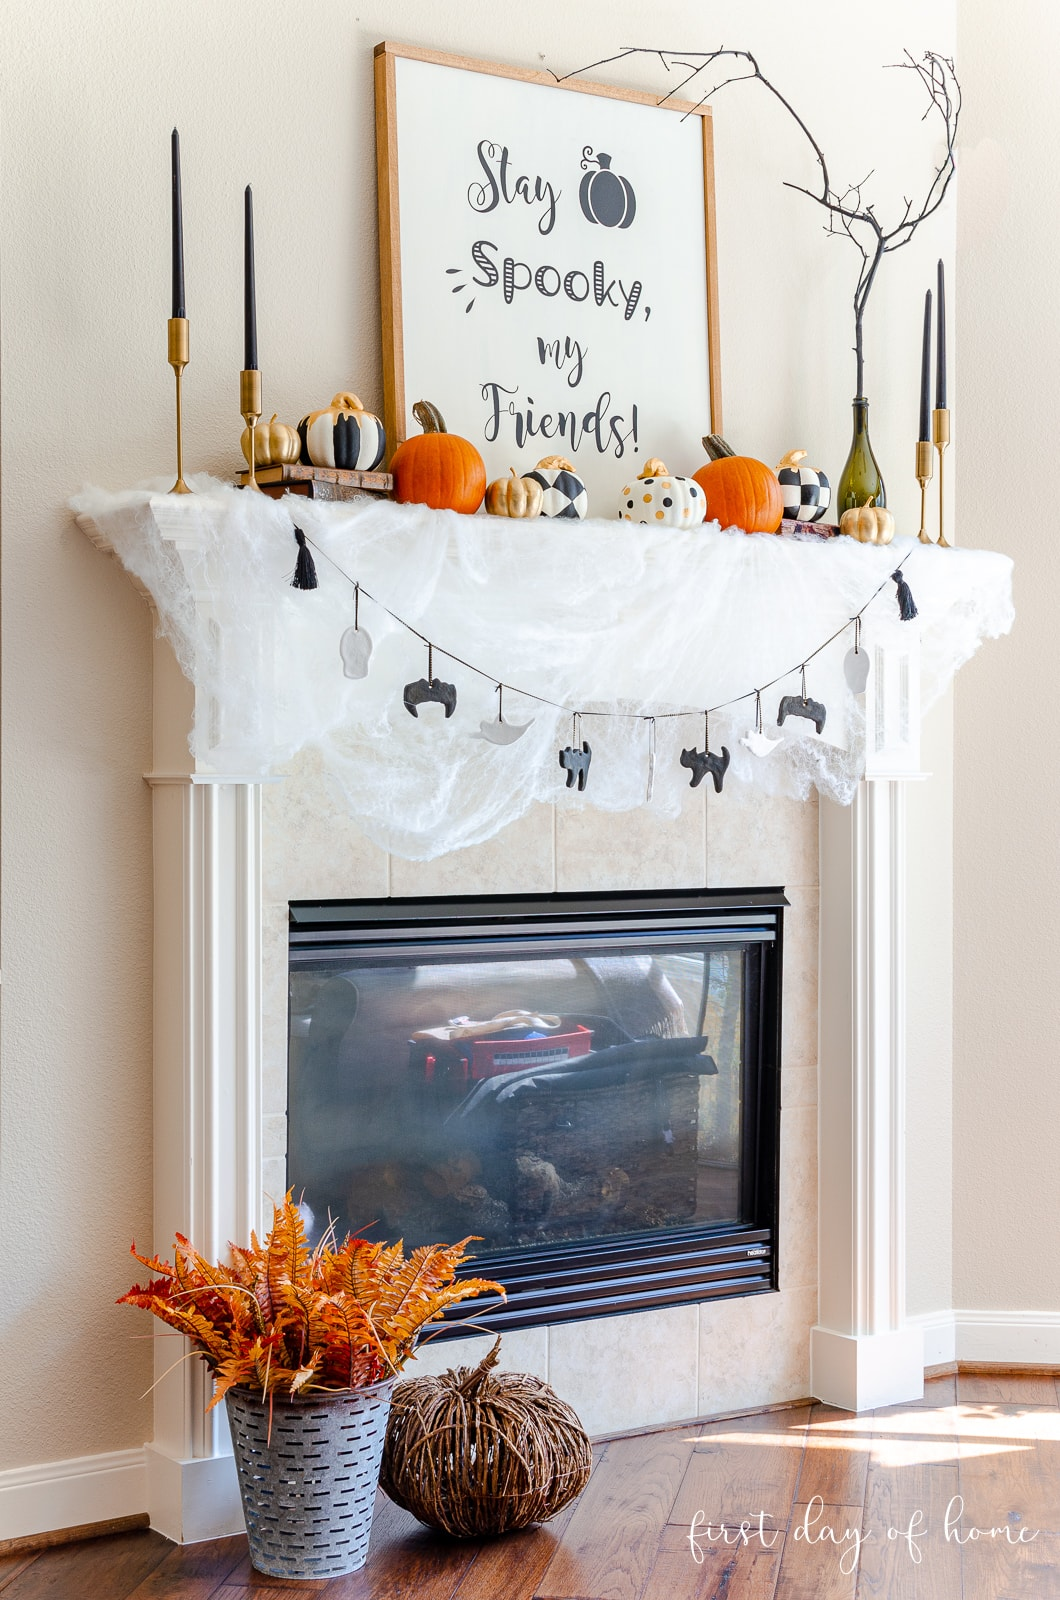 Halloween fireplace mantel decorations with DIY wood sign, salt dough ornaments for garland and painted foam pumpkins from Dollar Tree